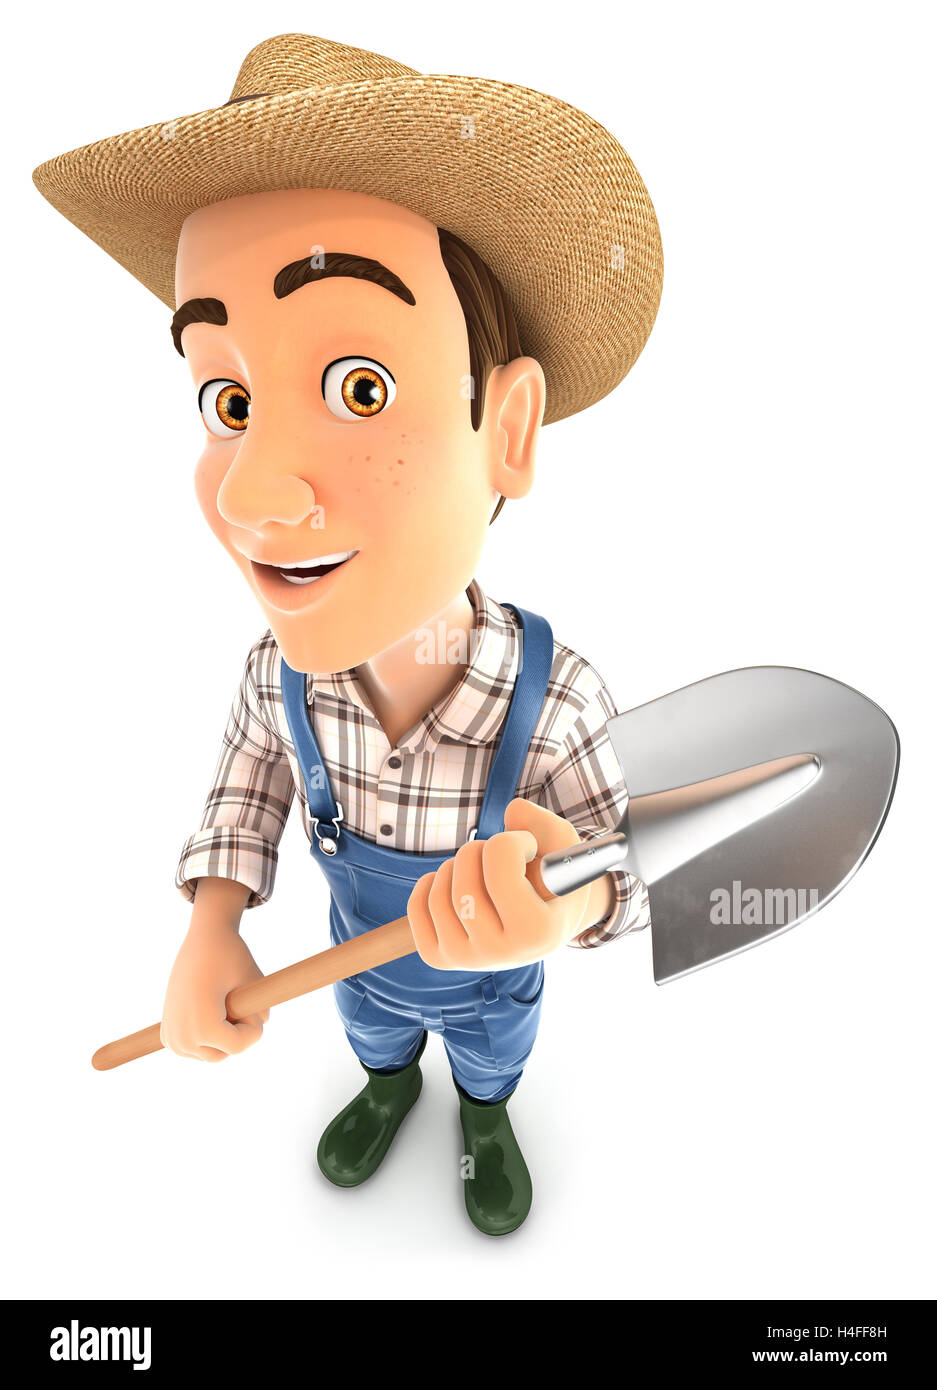 3d farmer holding a shovel, illustration with isolated white background Stock Photo